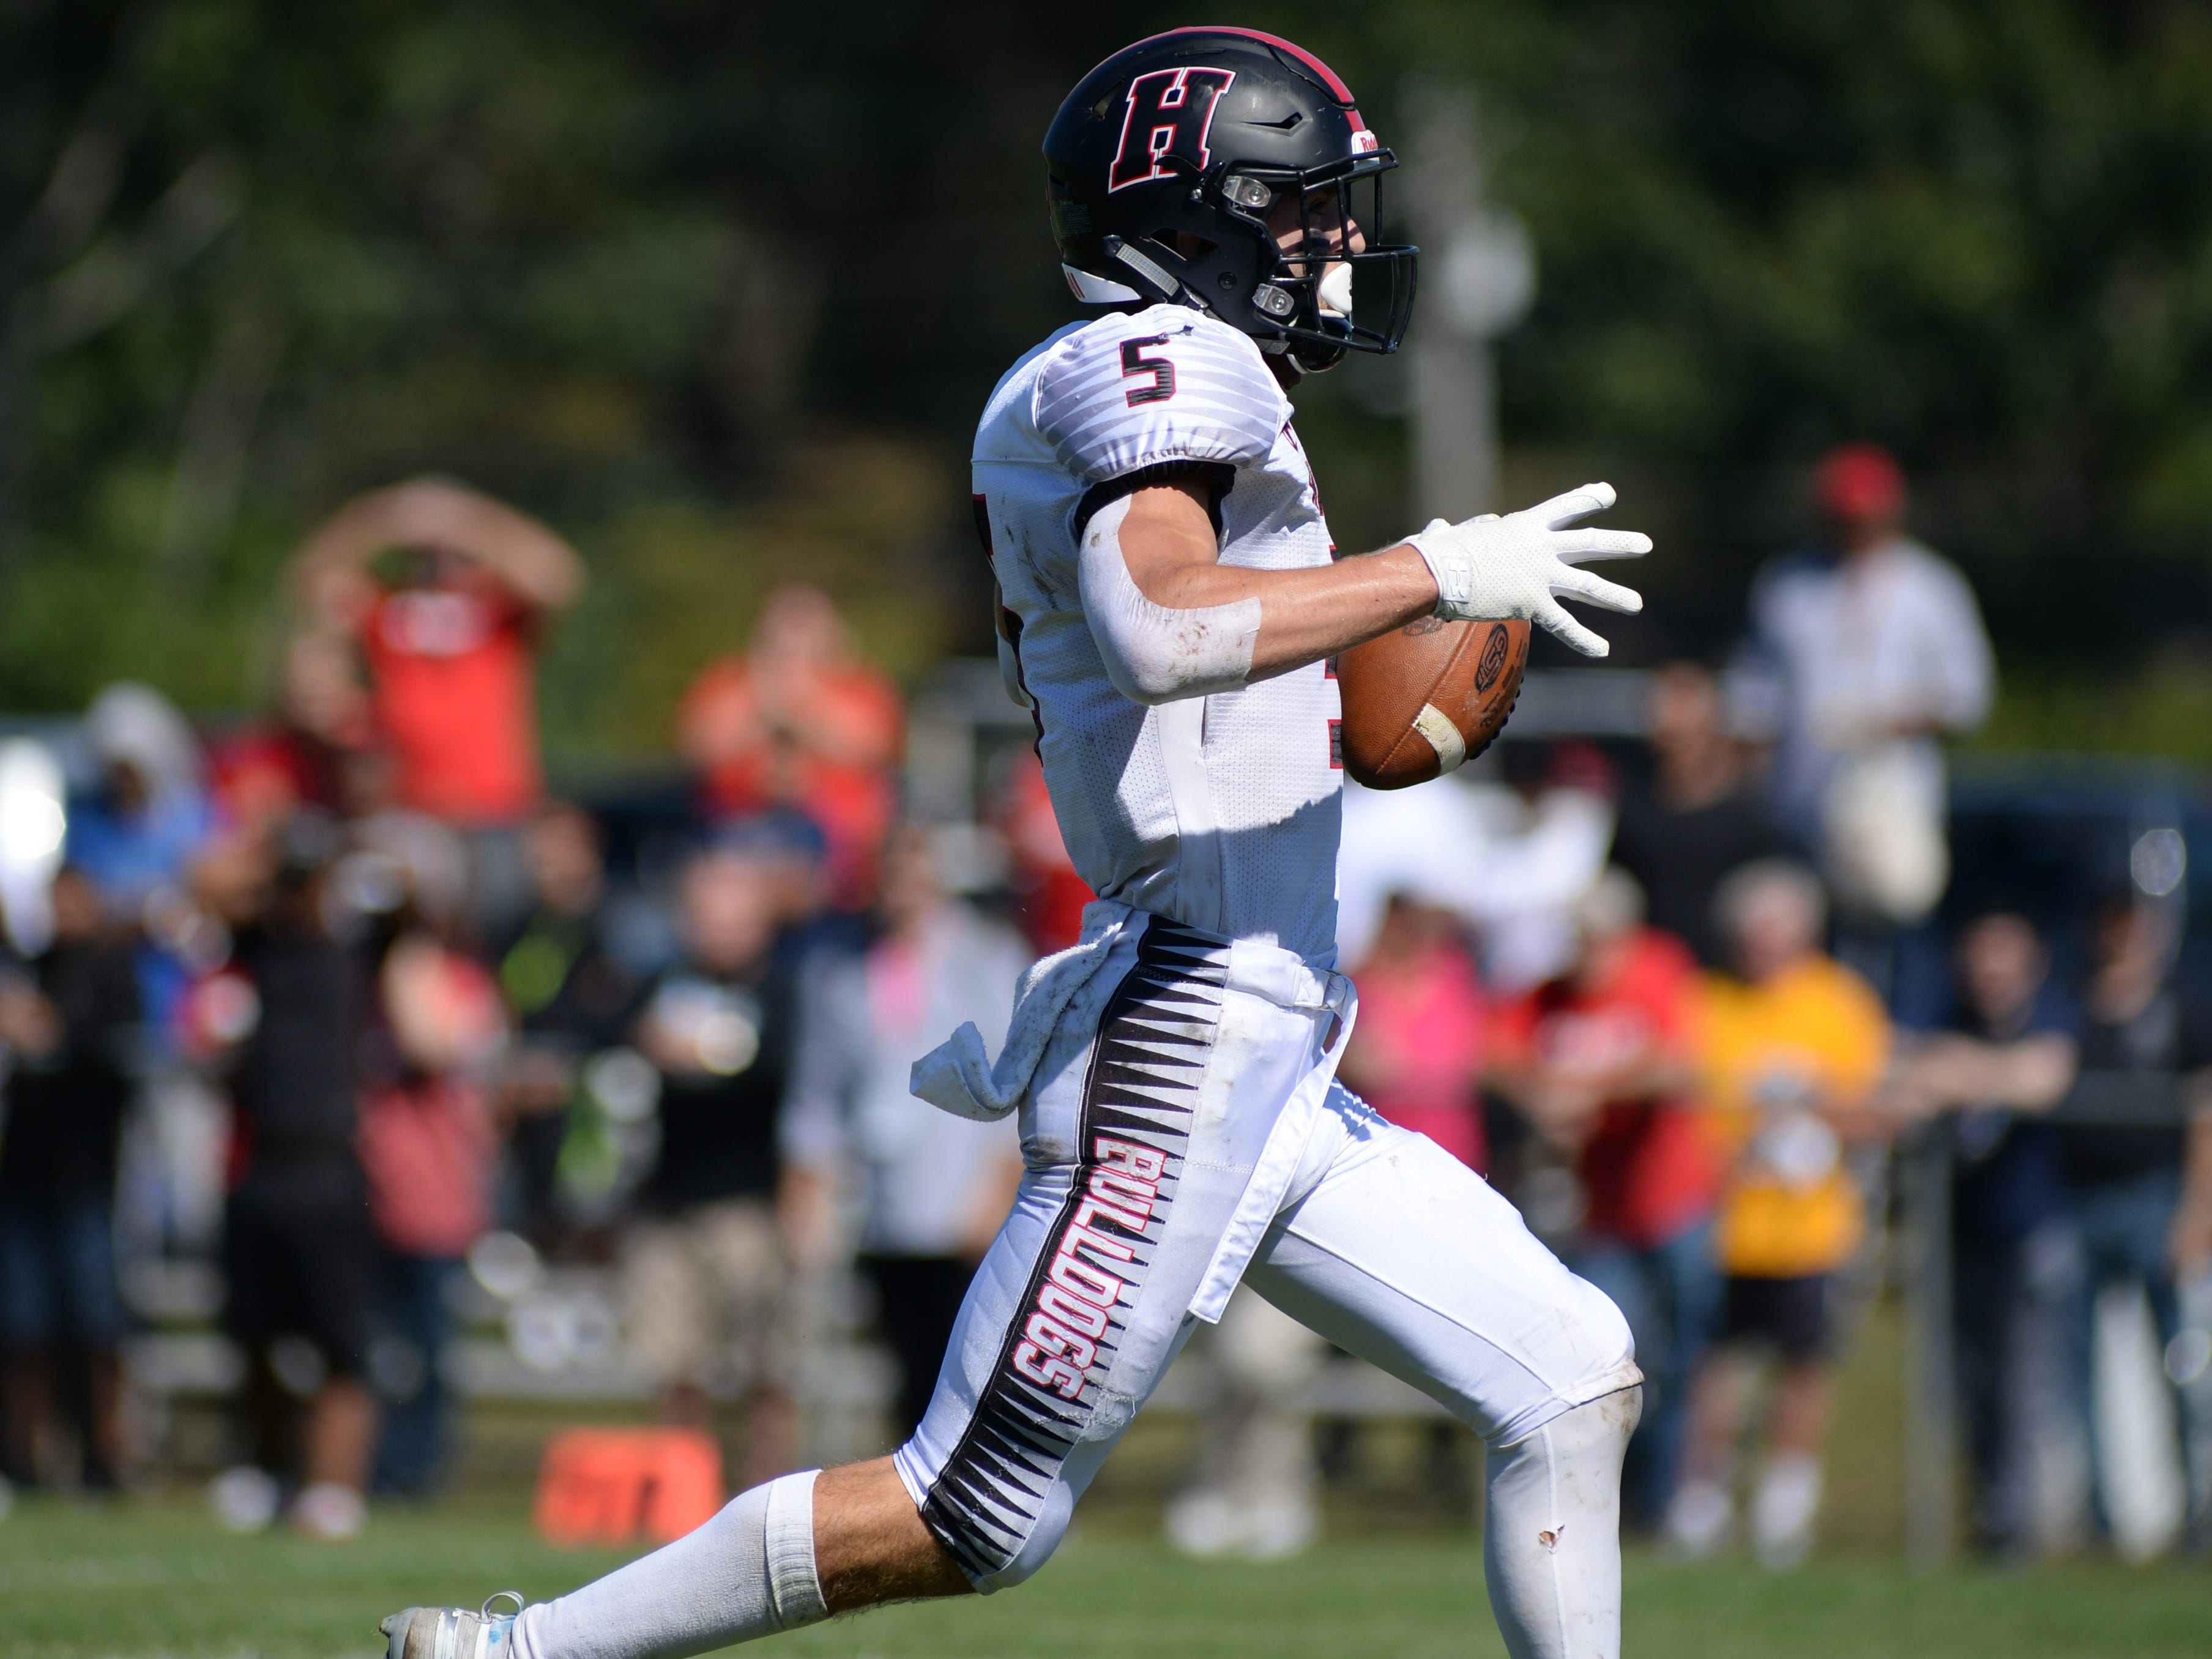 Haddonfield's Johnny Foley (5) runs for a touchdown during the first half of Saturday's game against St. Joseph, Sept. 29, 2018.